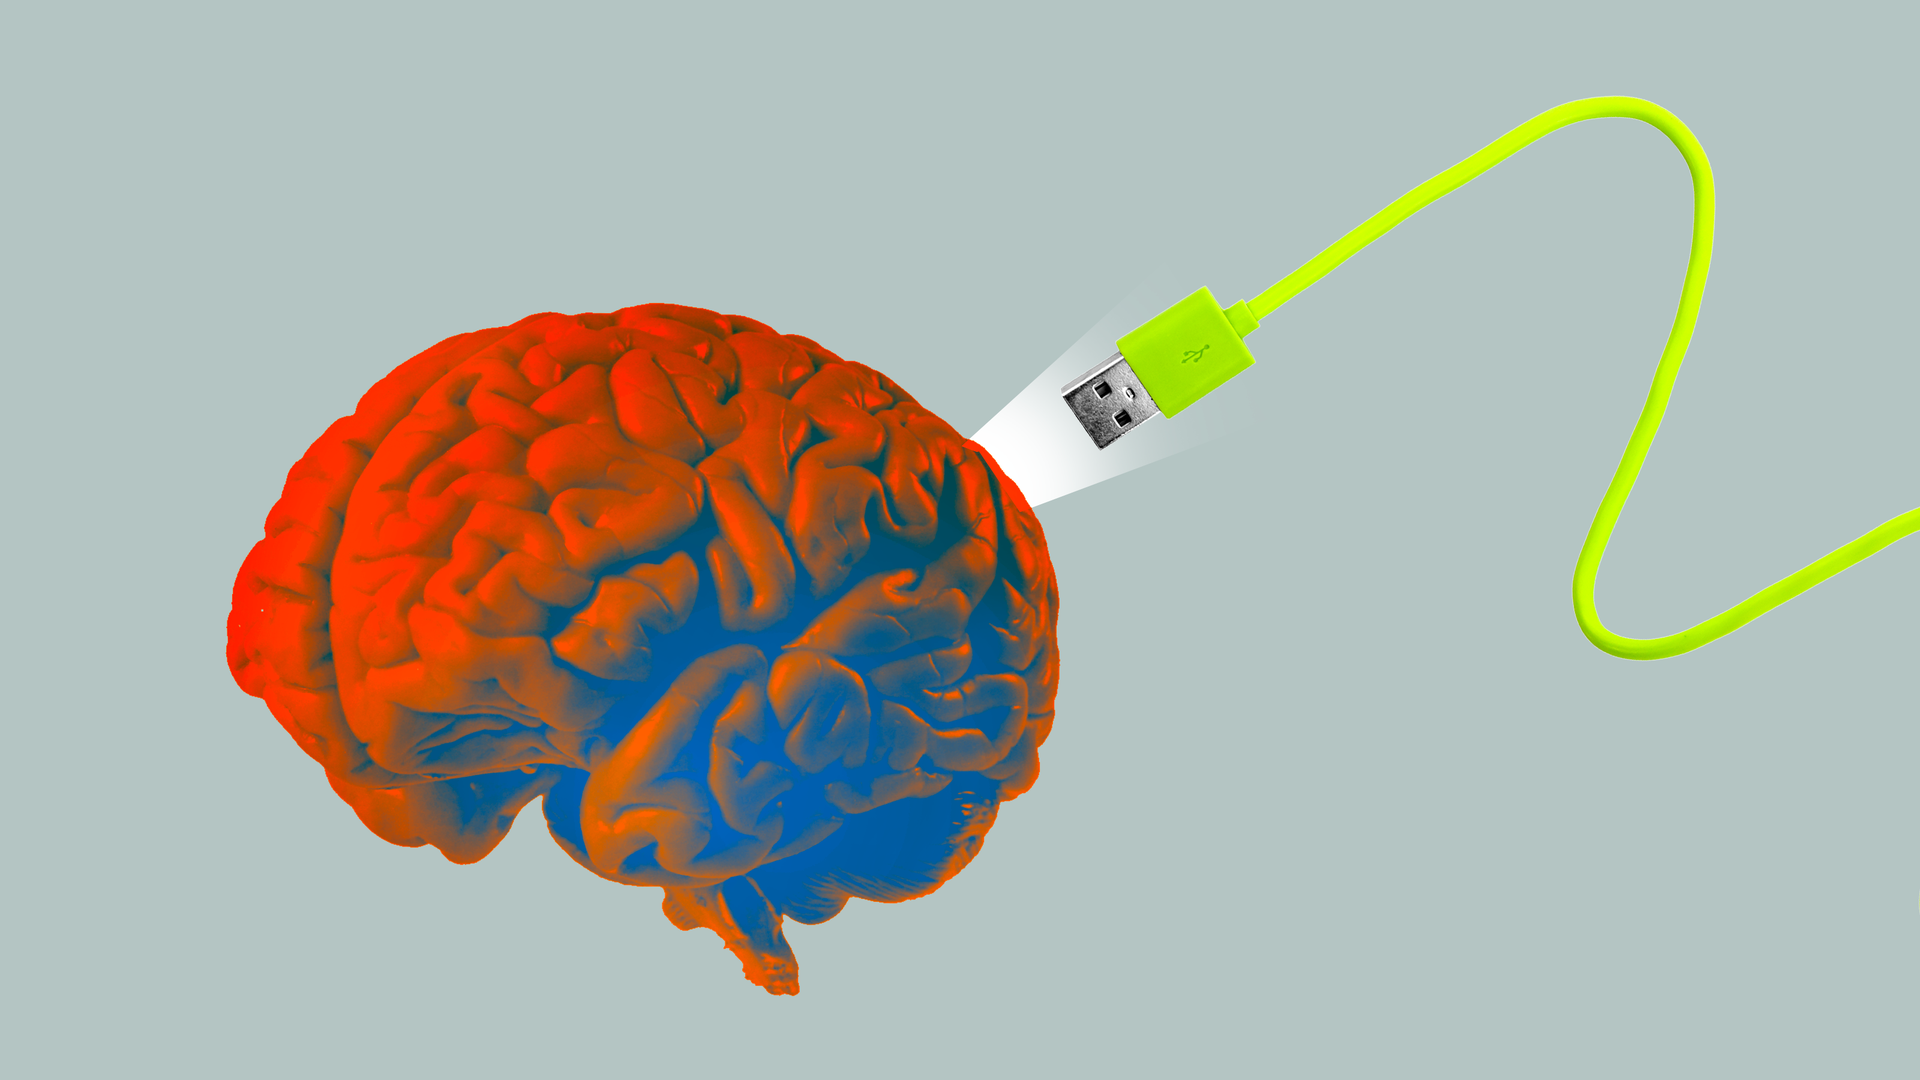 A USB cable plugging into a brain